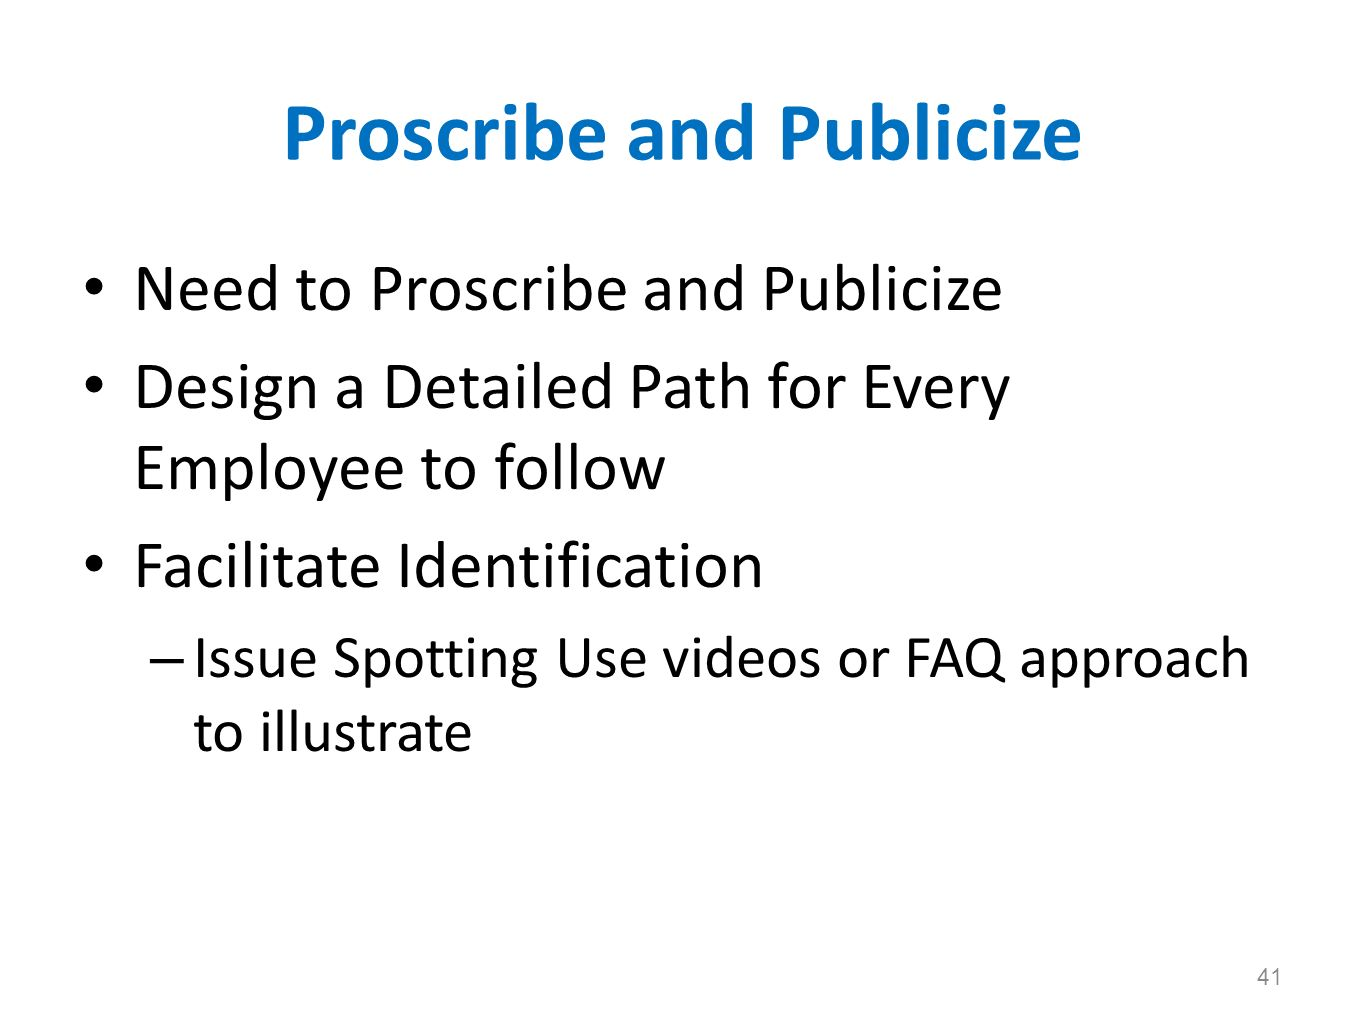 Proscribe and Publicize